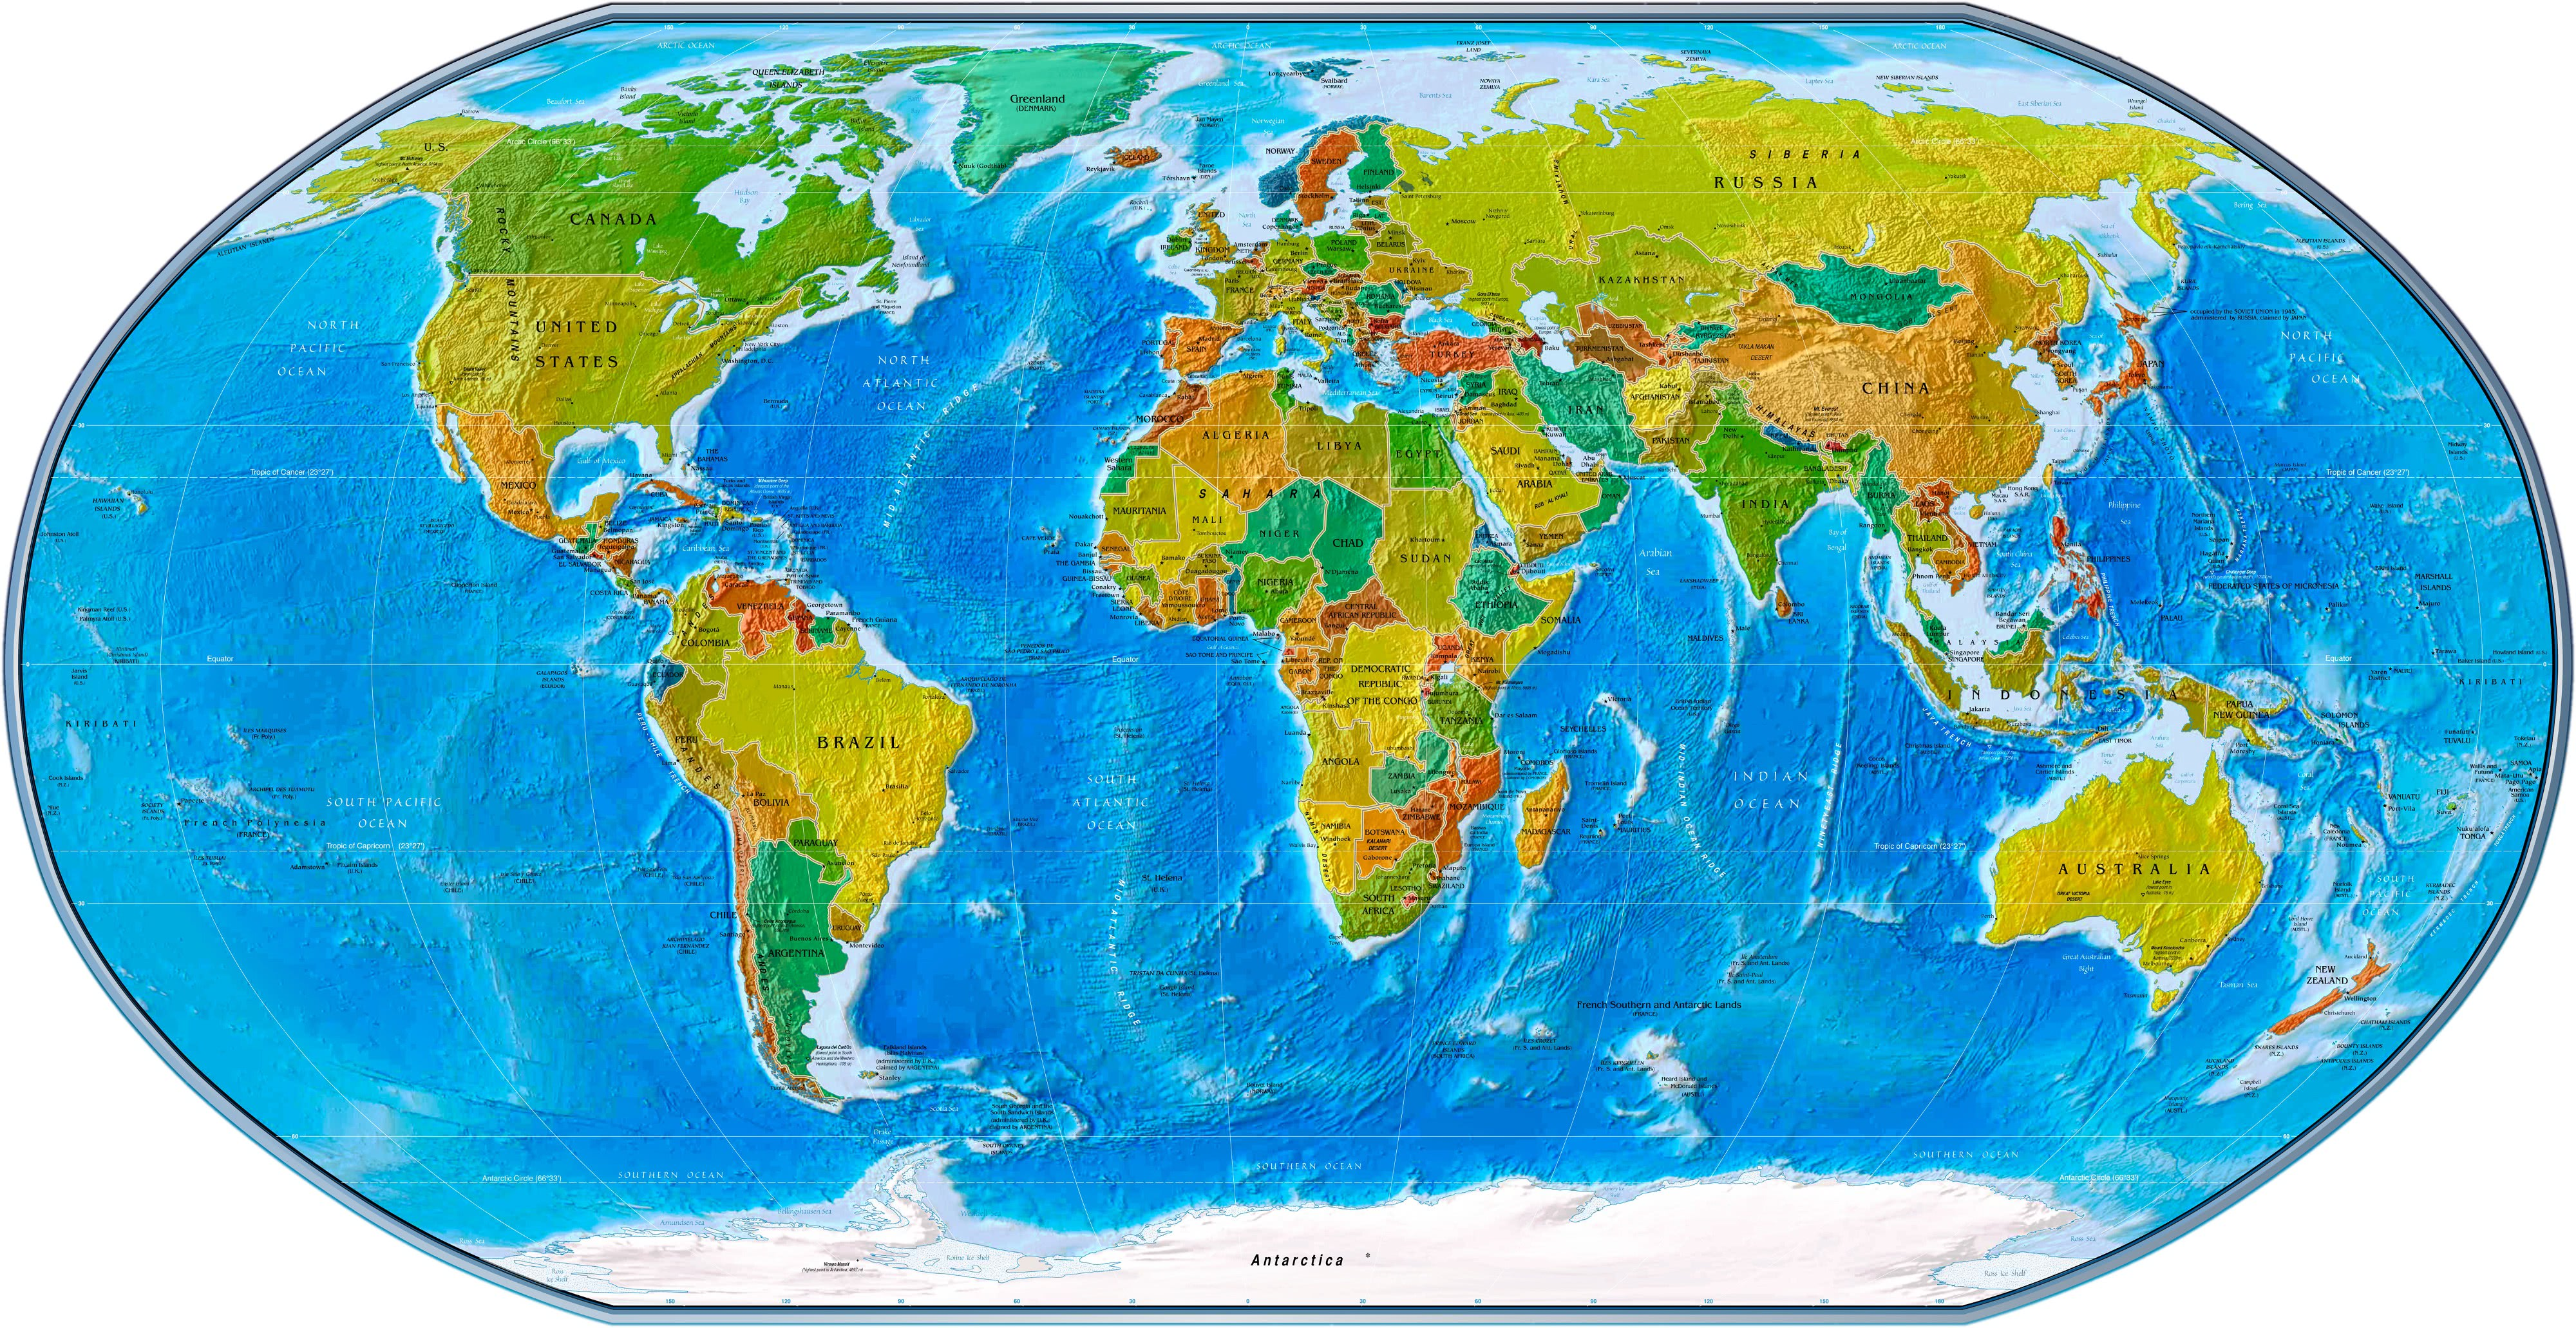 Physical political world map 2007 geographyworldmapsspecialty physical political world map 2007 geography worldmapsspecialtyphysicalpoliticalworldmap2007gml gumiabroncs Image collections